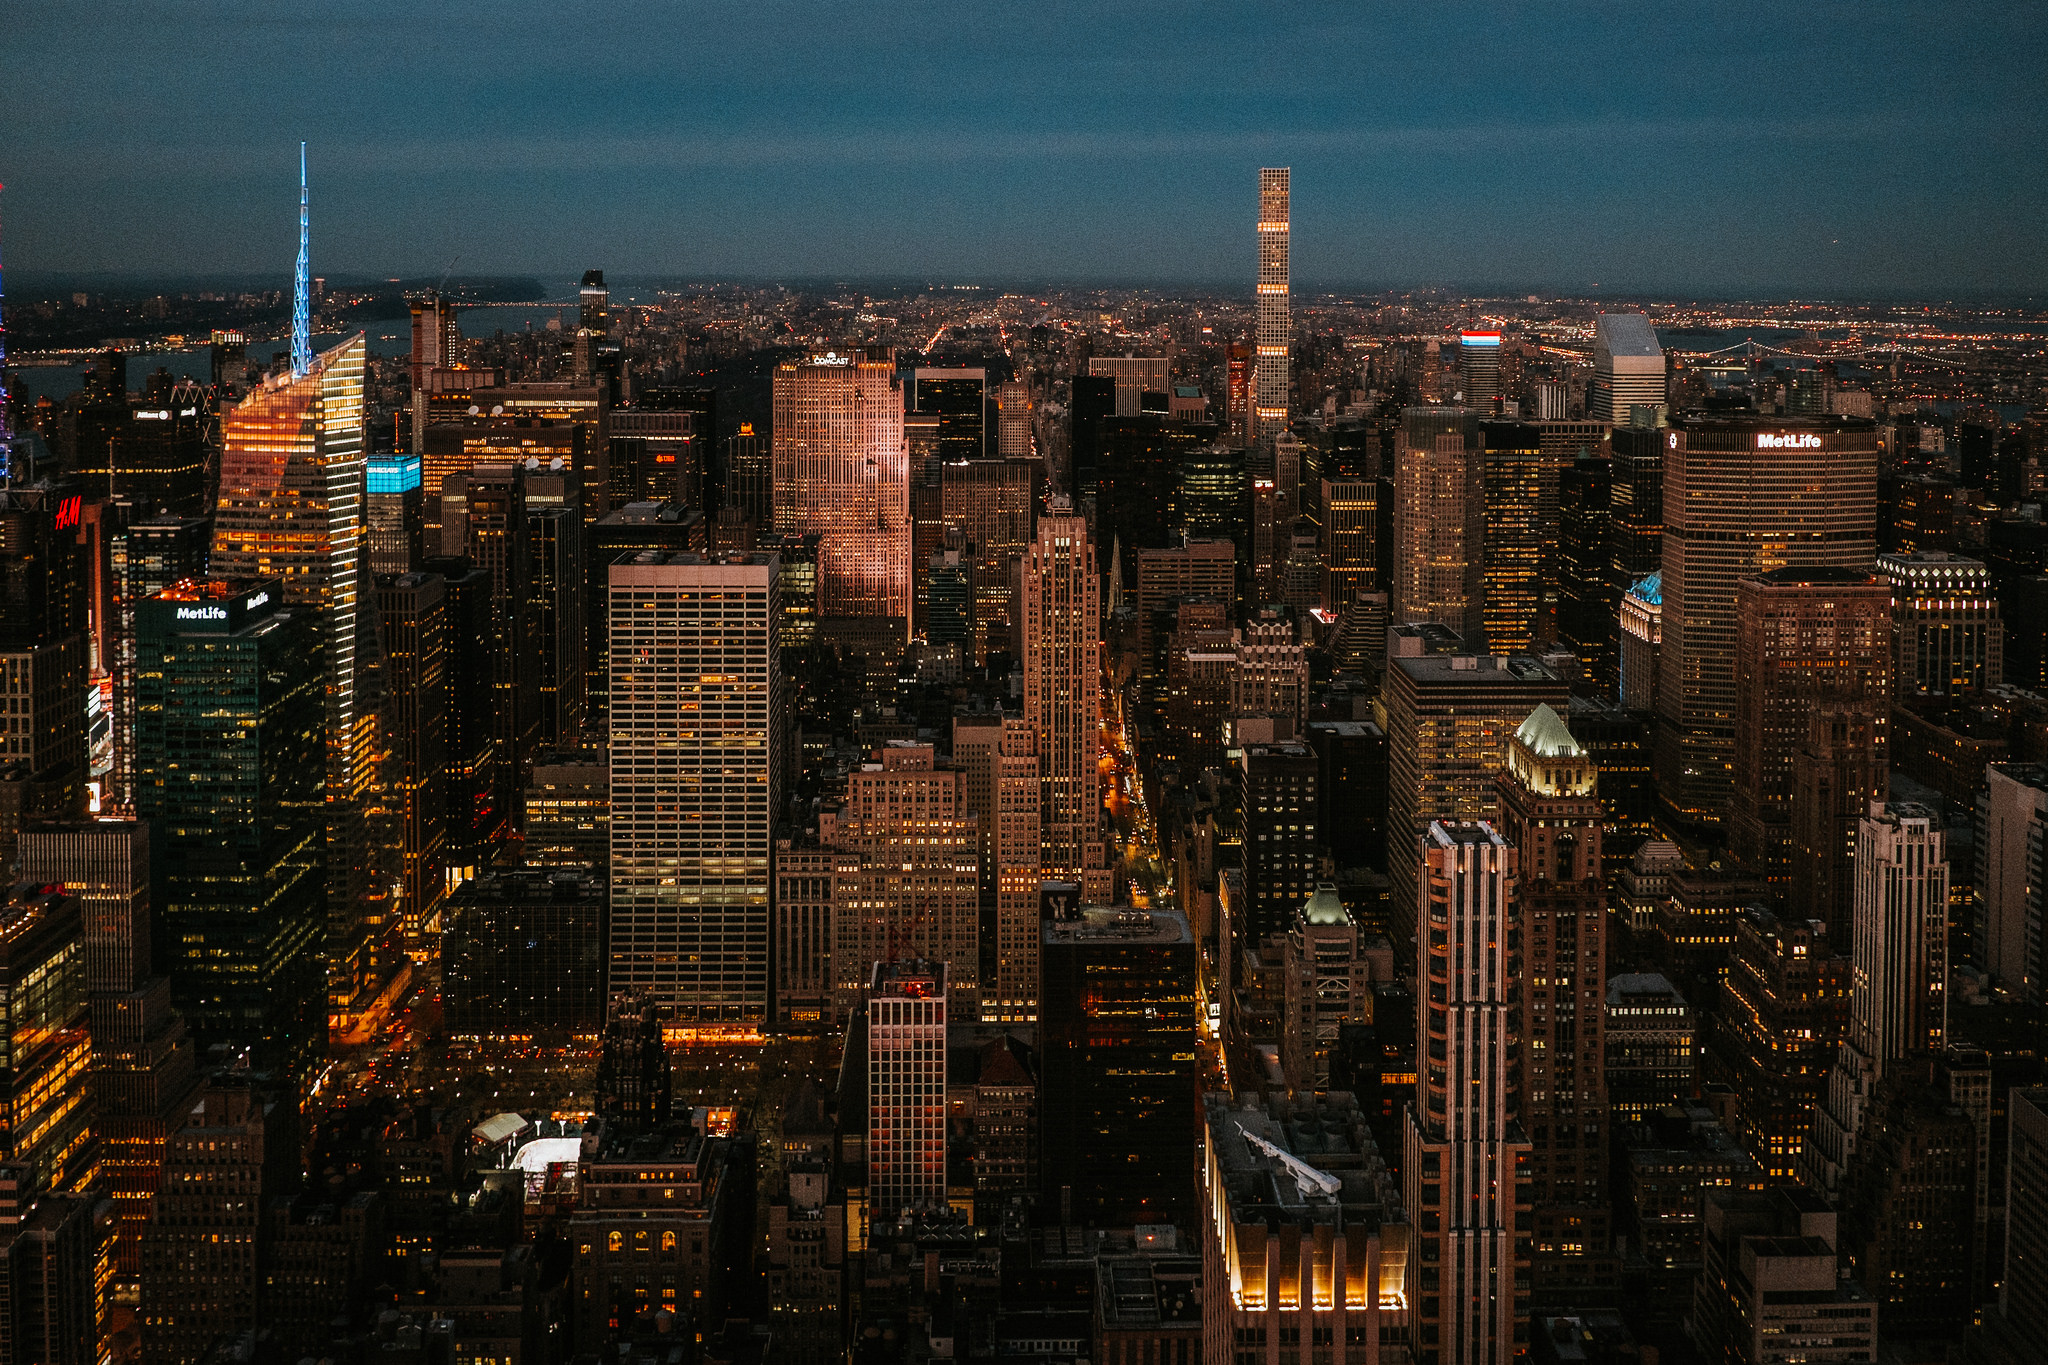 New diagnoses of HIV in New York City have reached an all-time low - 图片 1